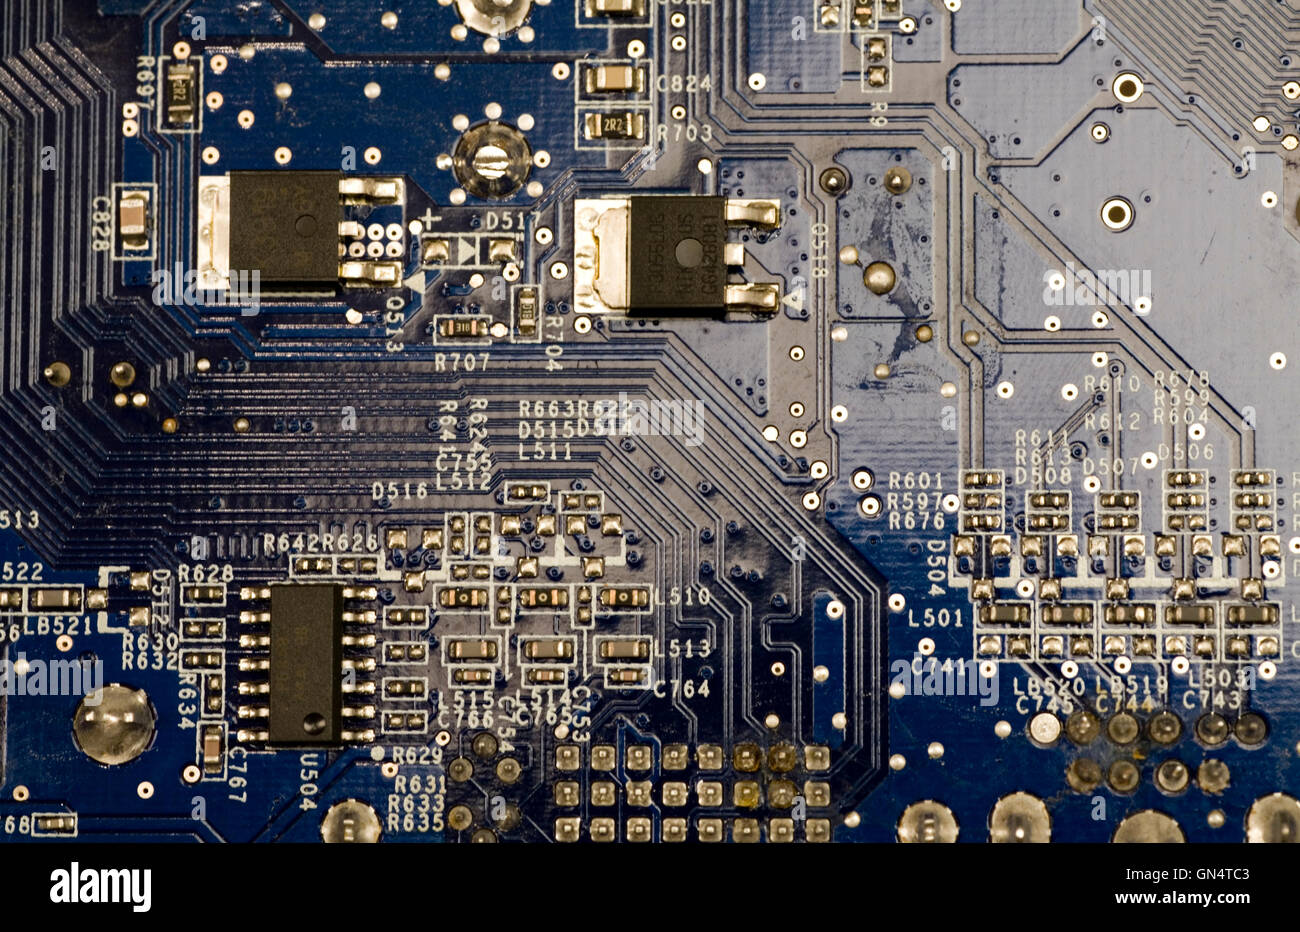 microcircuit with chip of condensers, resistors and transistors - Stock Image